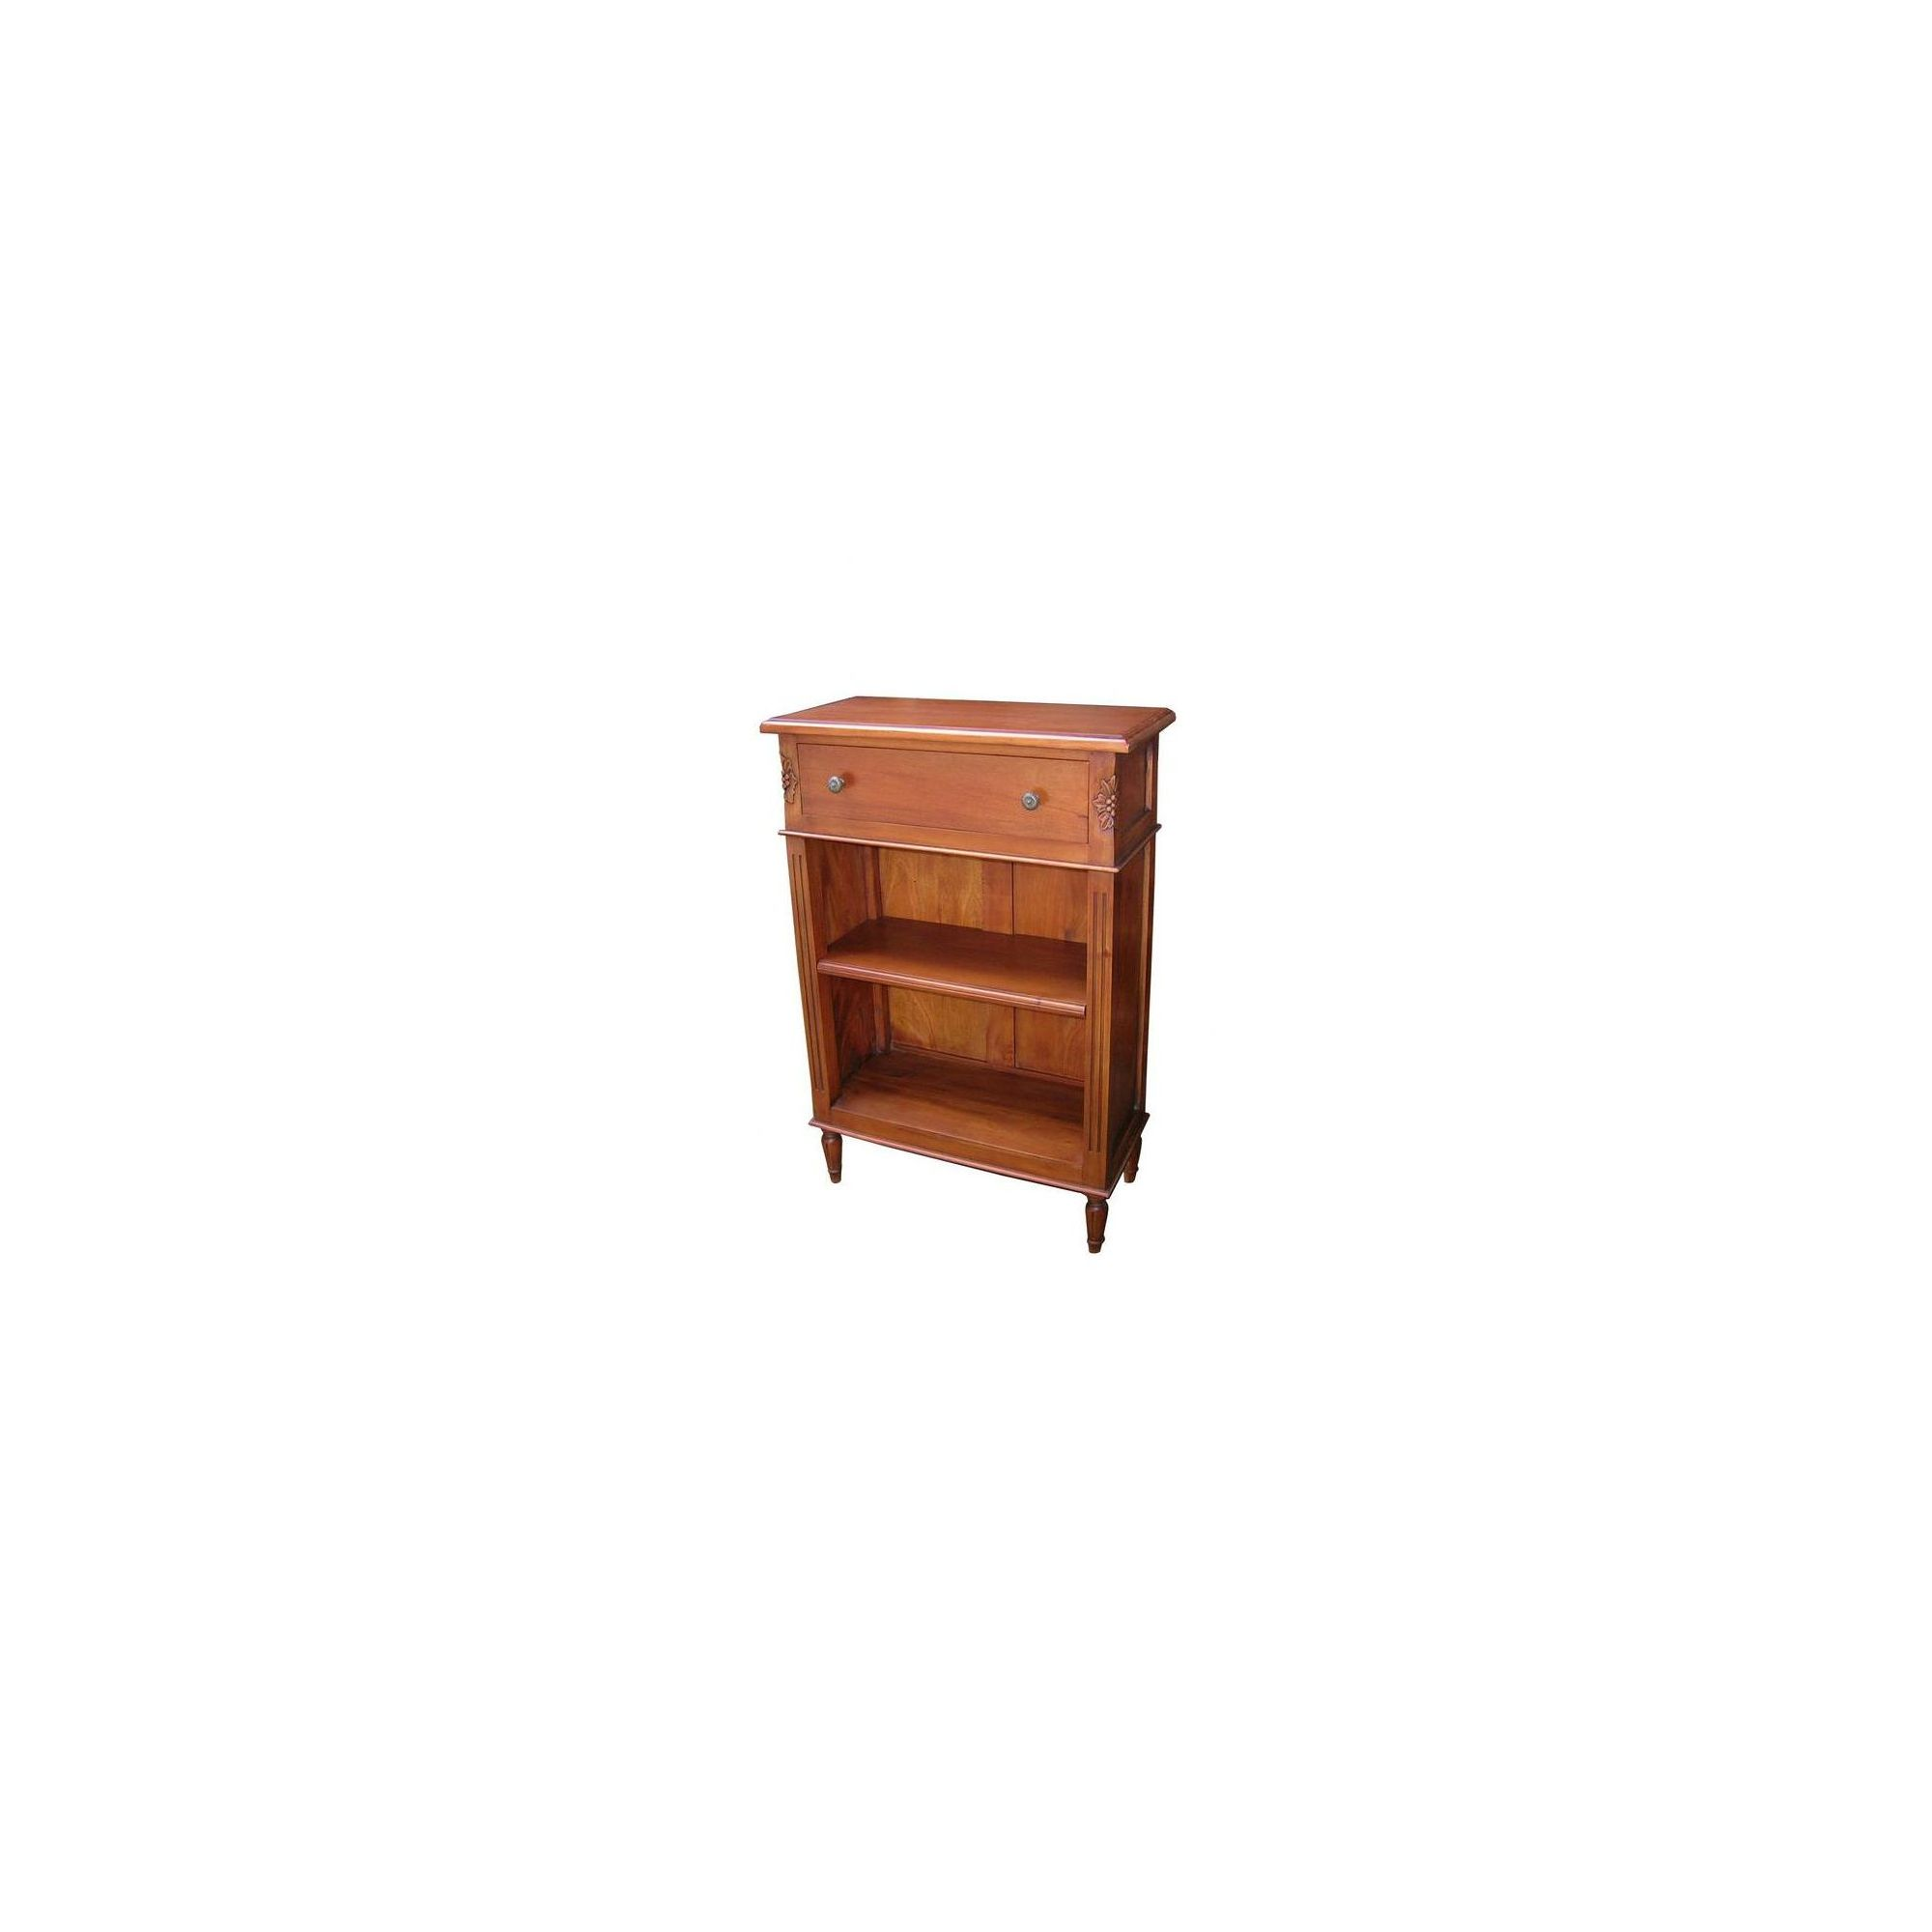 Lock stock and barrel Mahogany Dwarfe Bookcase in Mahogany at Tesco Direct